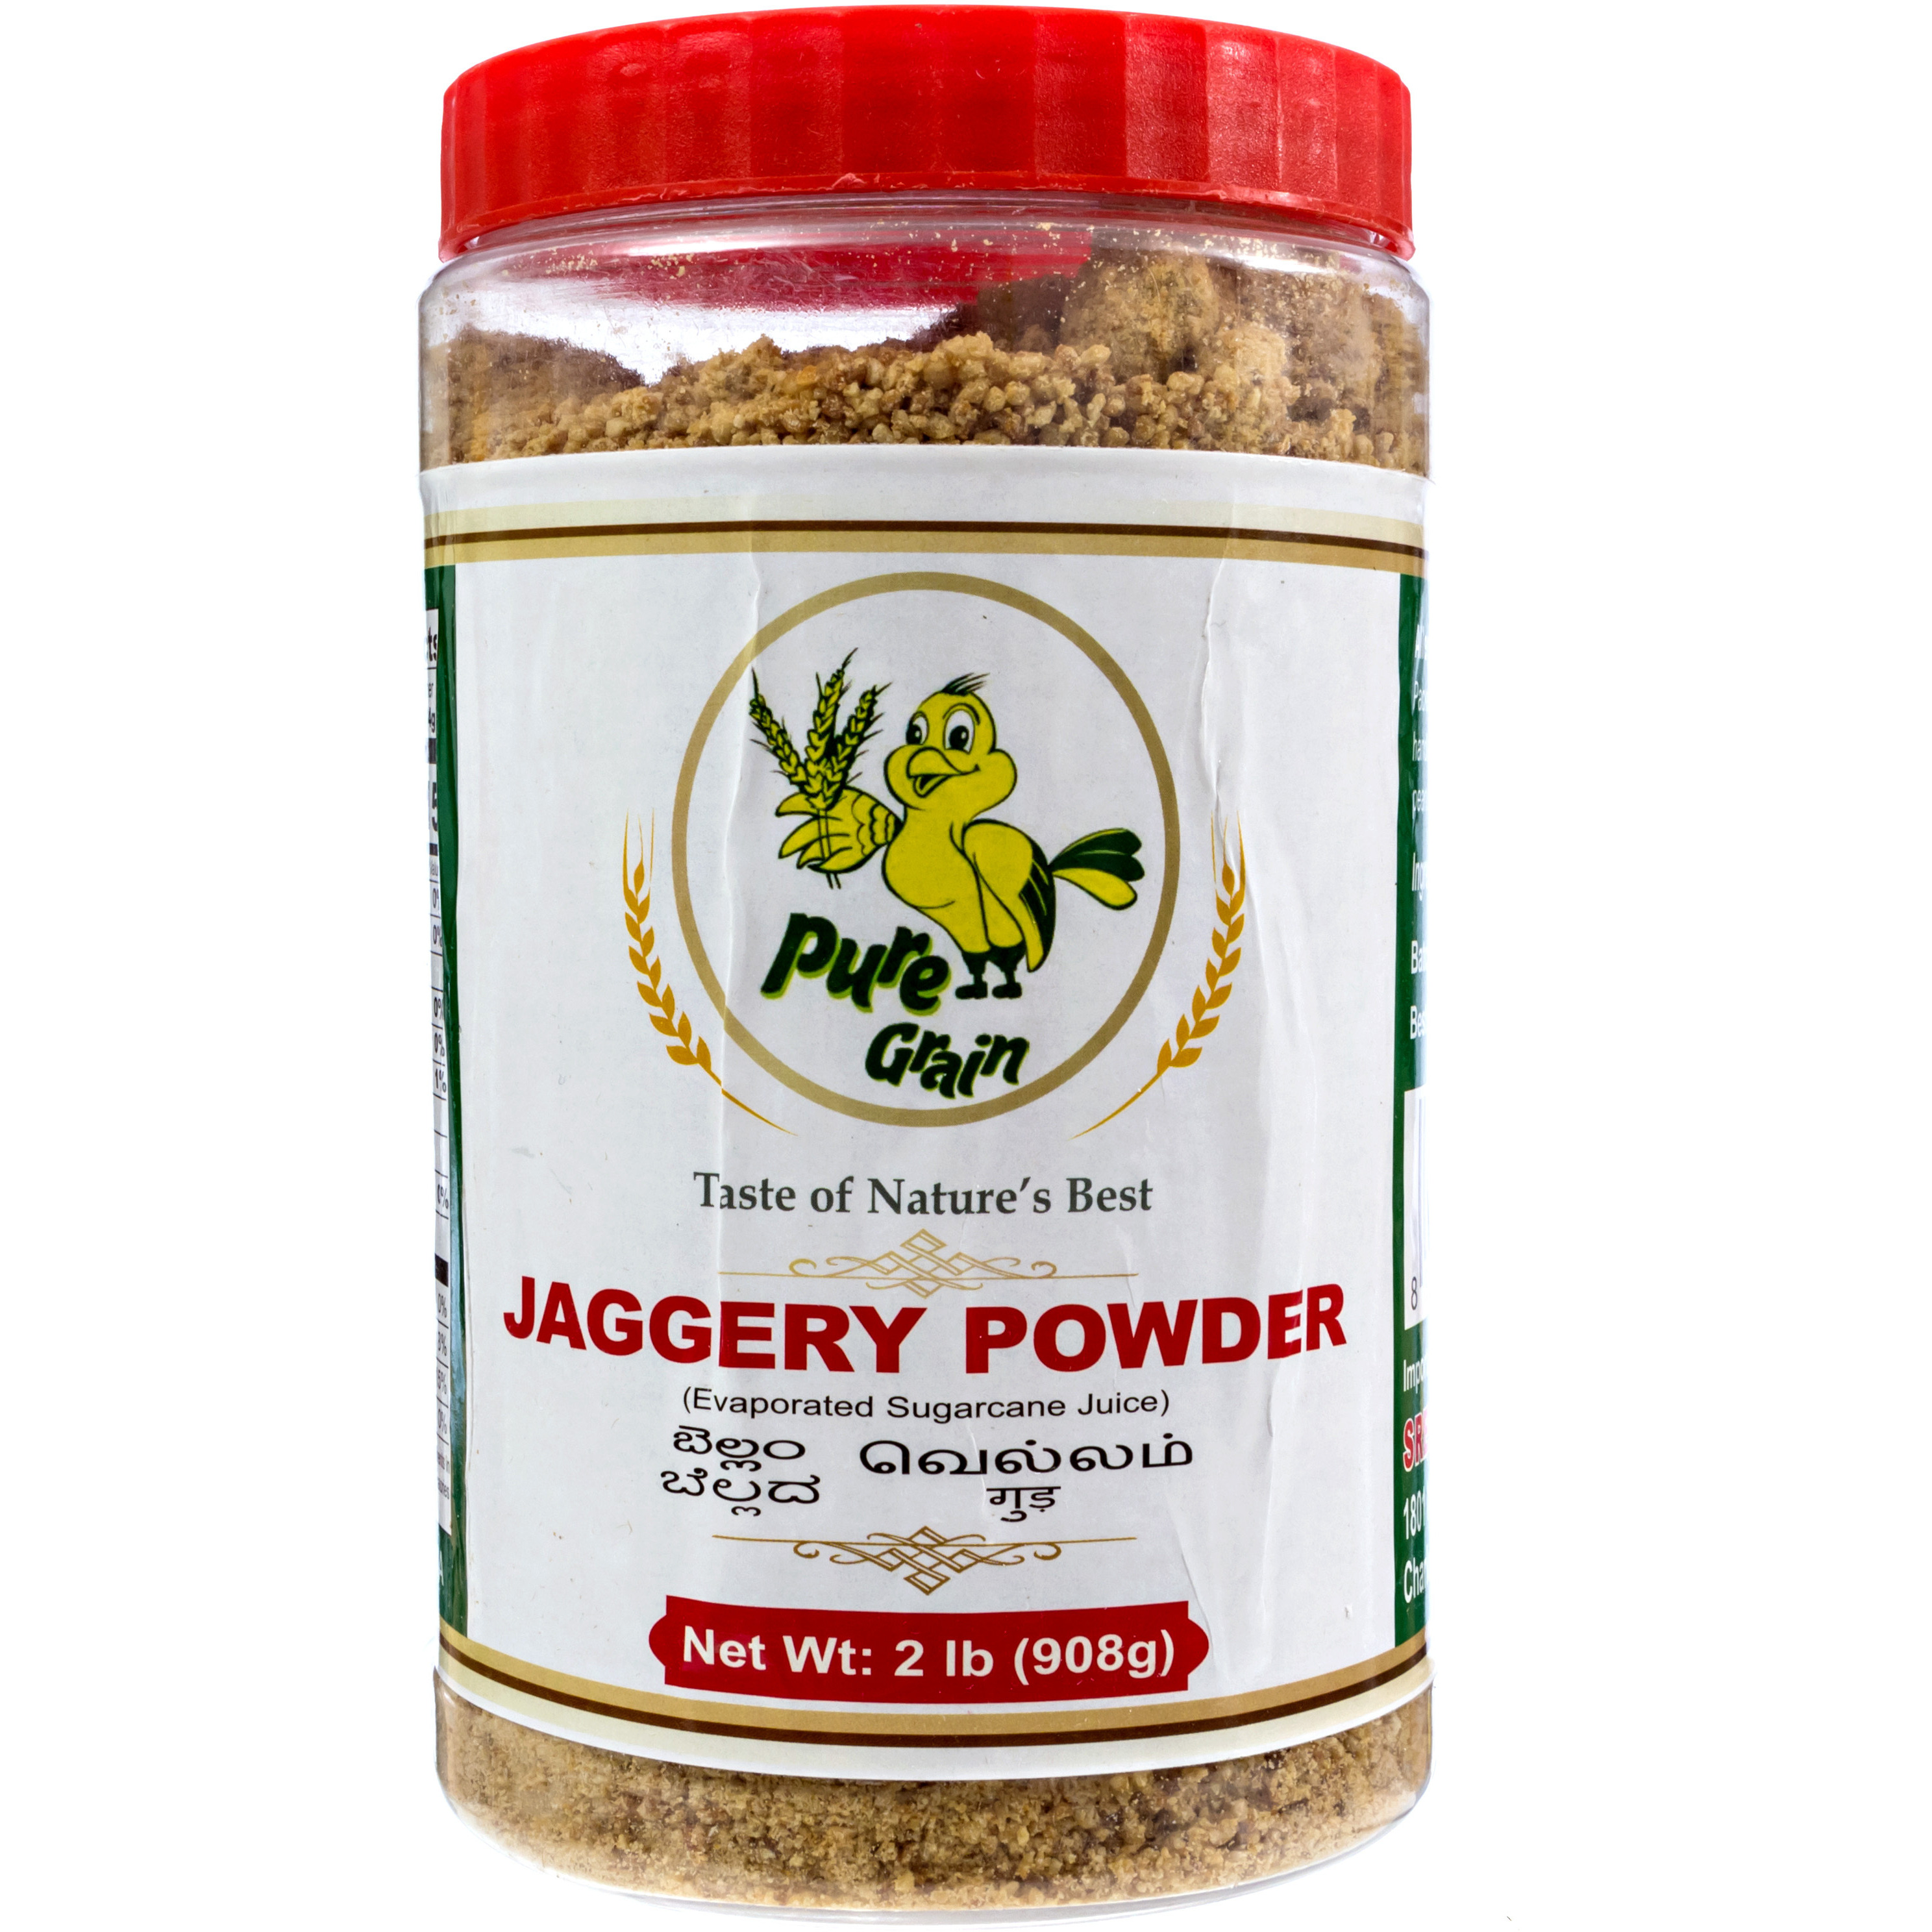 Pure Grain Jaggery Powder Plastic Jar 2lbs